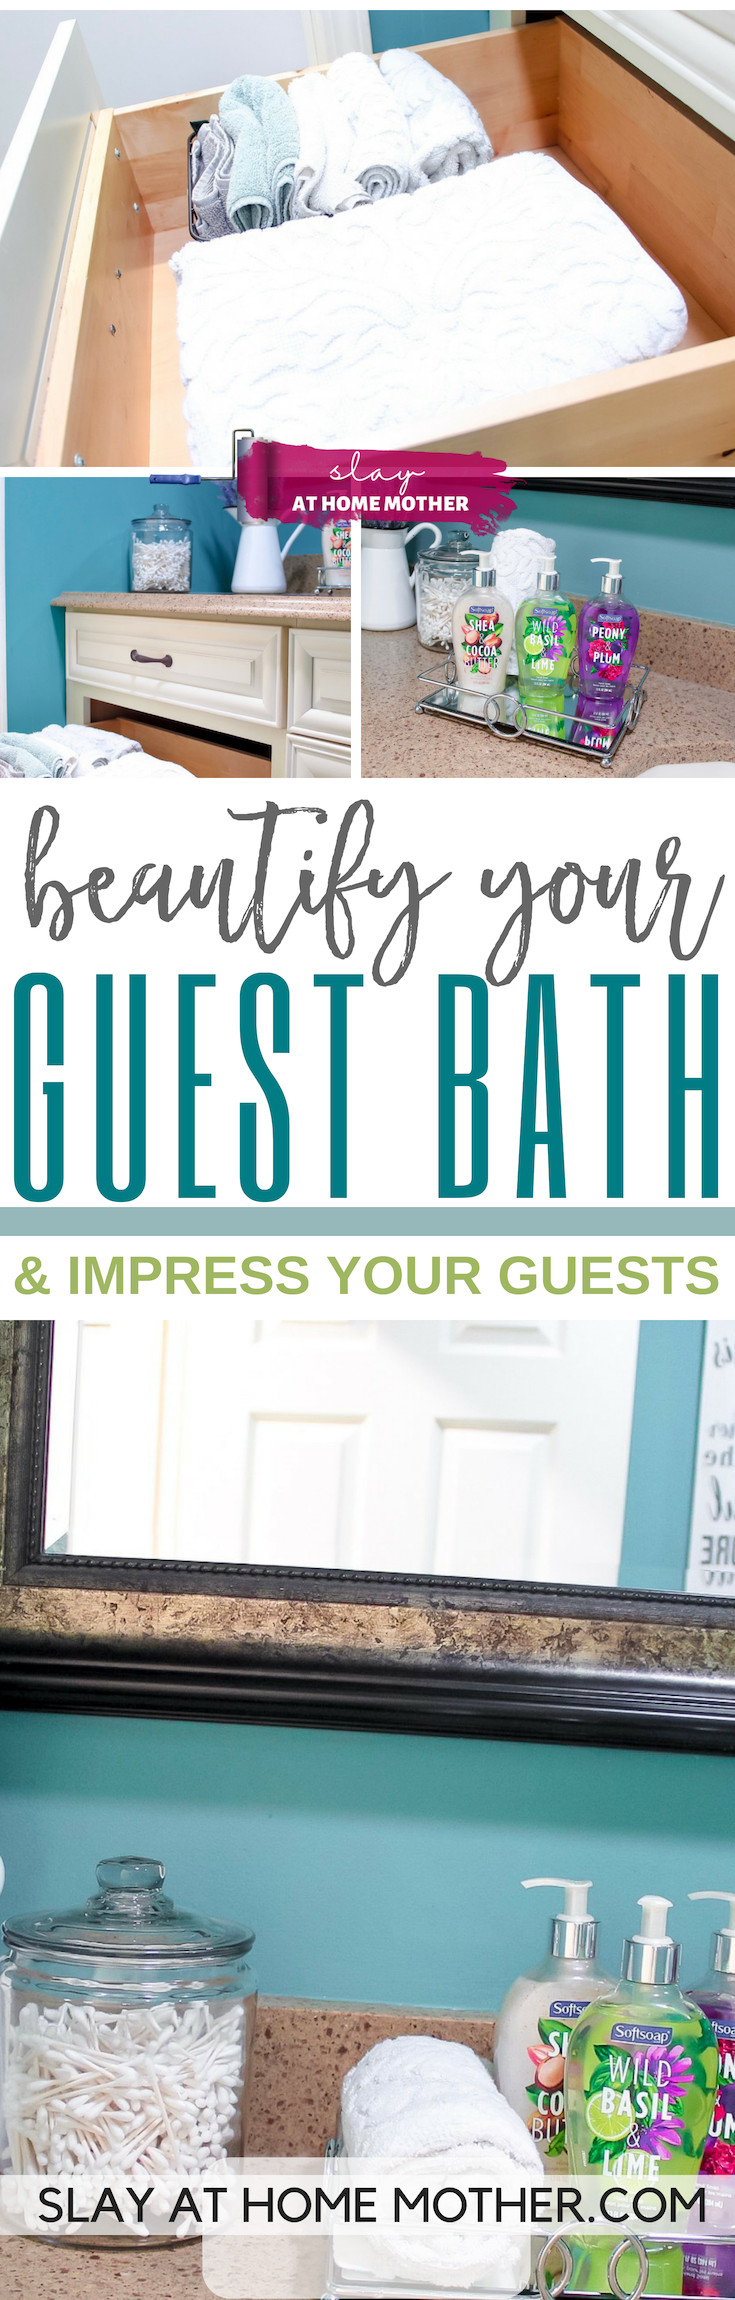 Beautify Your Guest Bath (And Impress Your Guests!) #ad #slayathomemother #bathroom -- SLAYathomemother.com